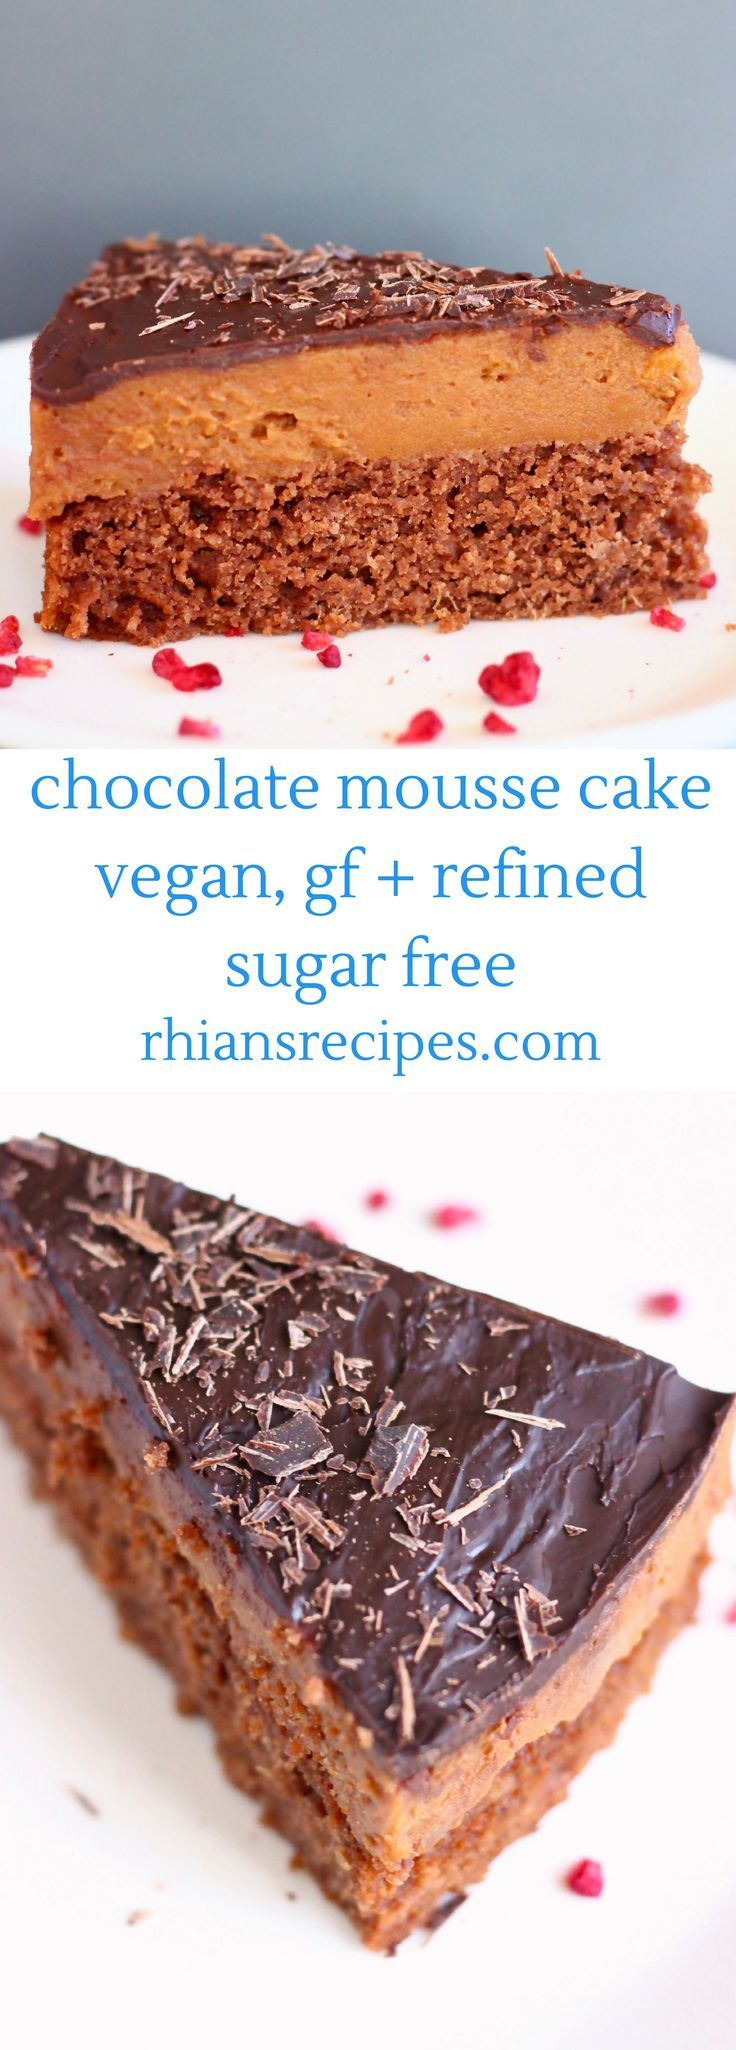 This Gluten-Free Vegan Chocolate Mousse Cake is the best secretly healthy yet seriously indulgent dessert. It's super chocolatey, rich and creamy and perfectly sweet! Refined sugar free.